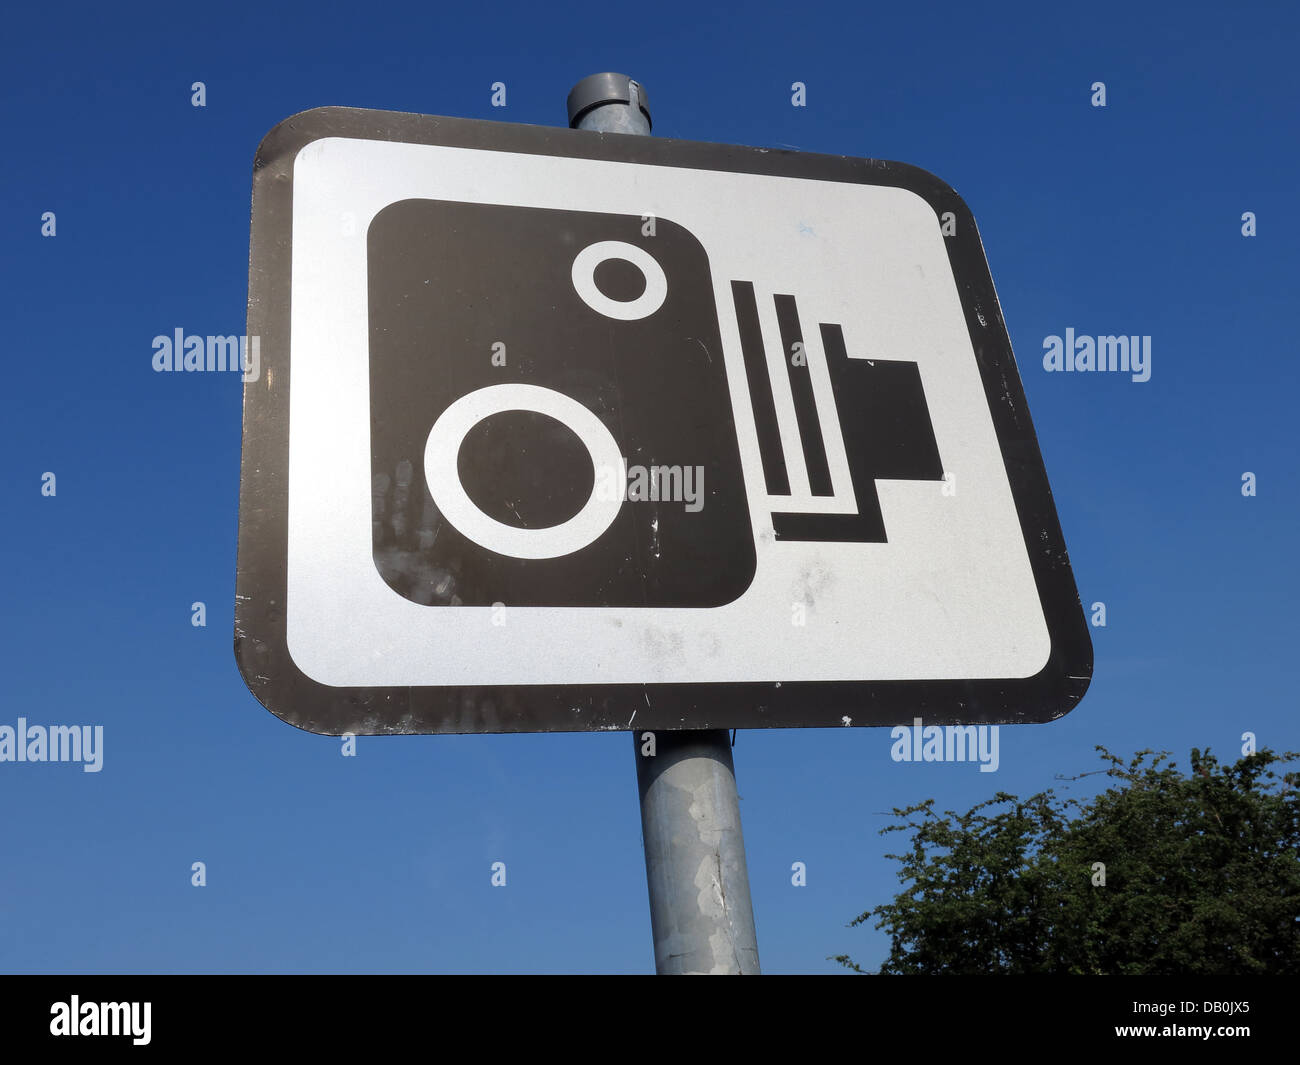 British speed camera sign in front of a summer blue sky - Stock Image